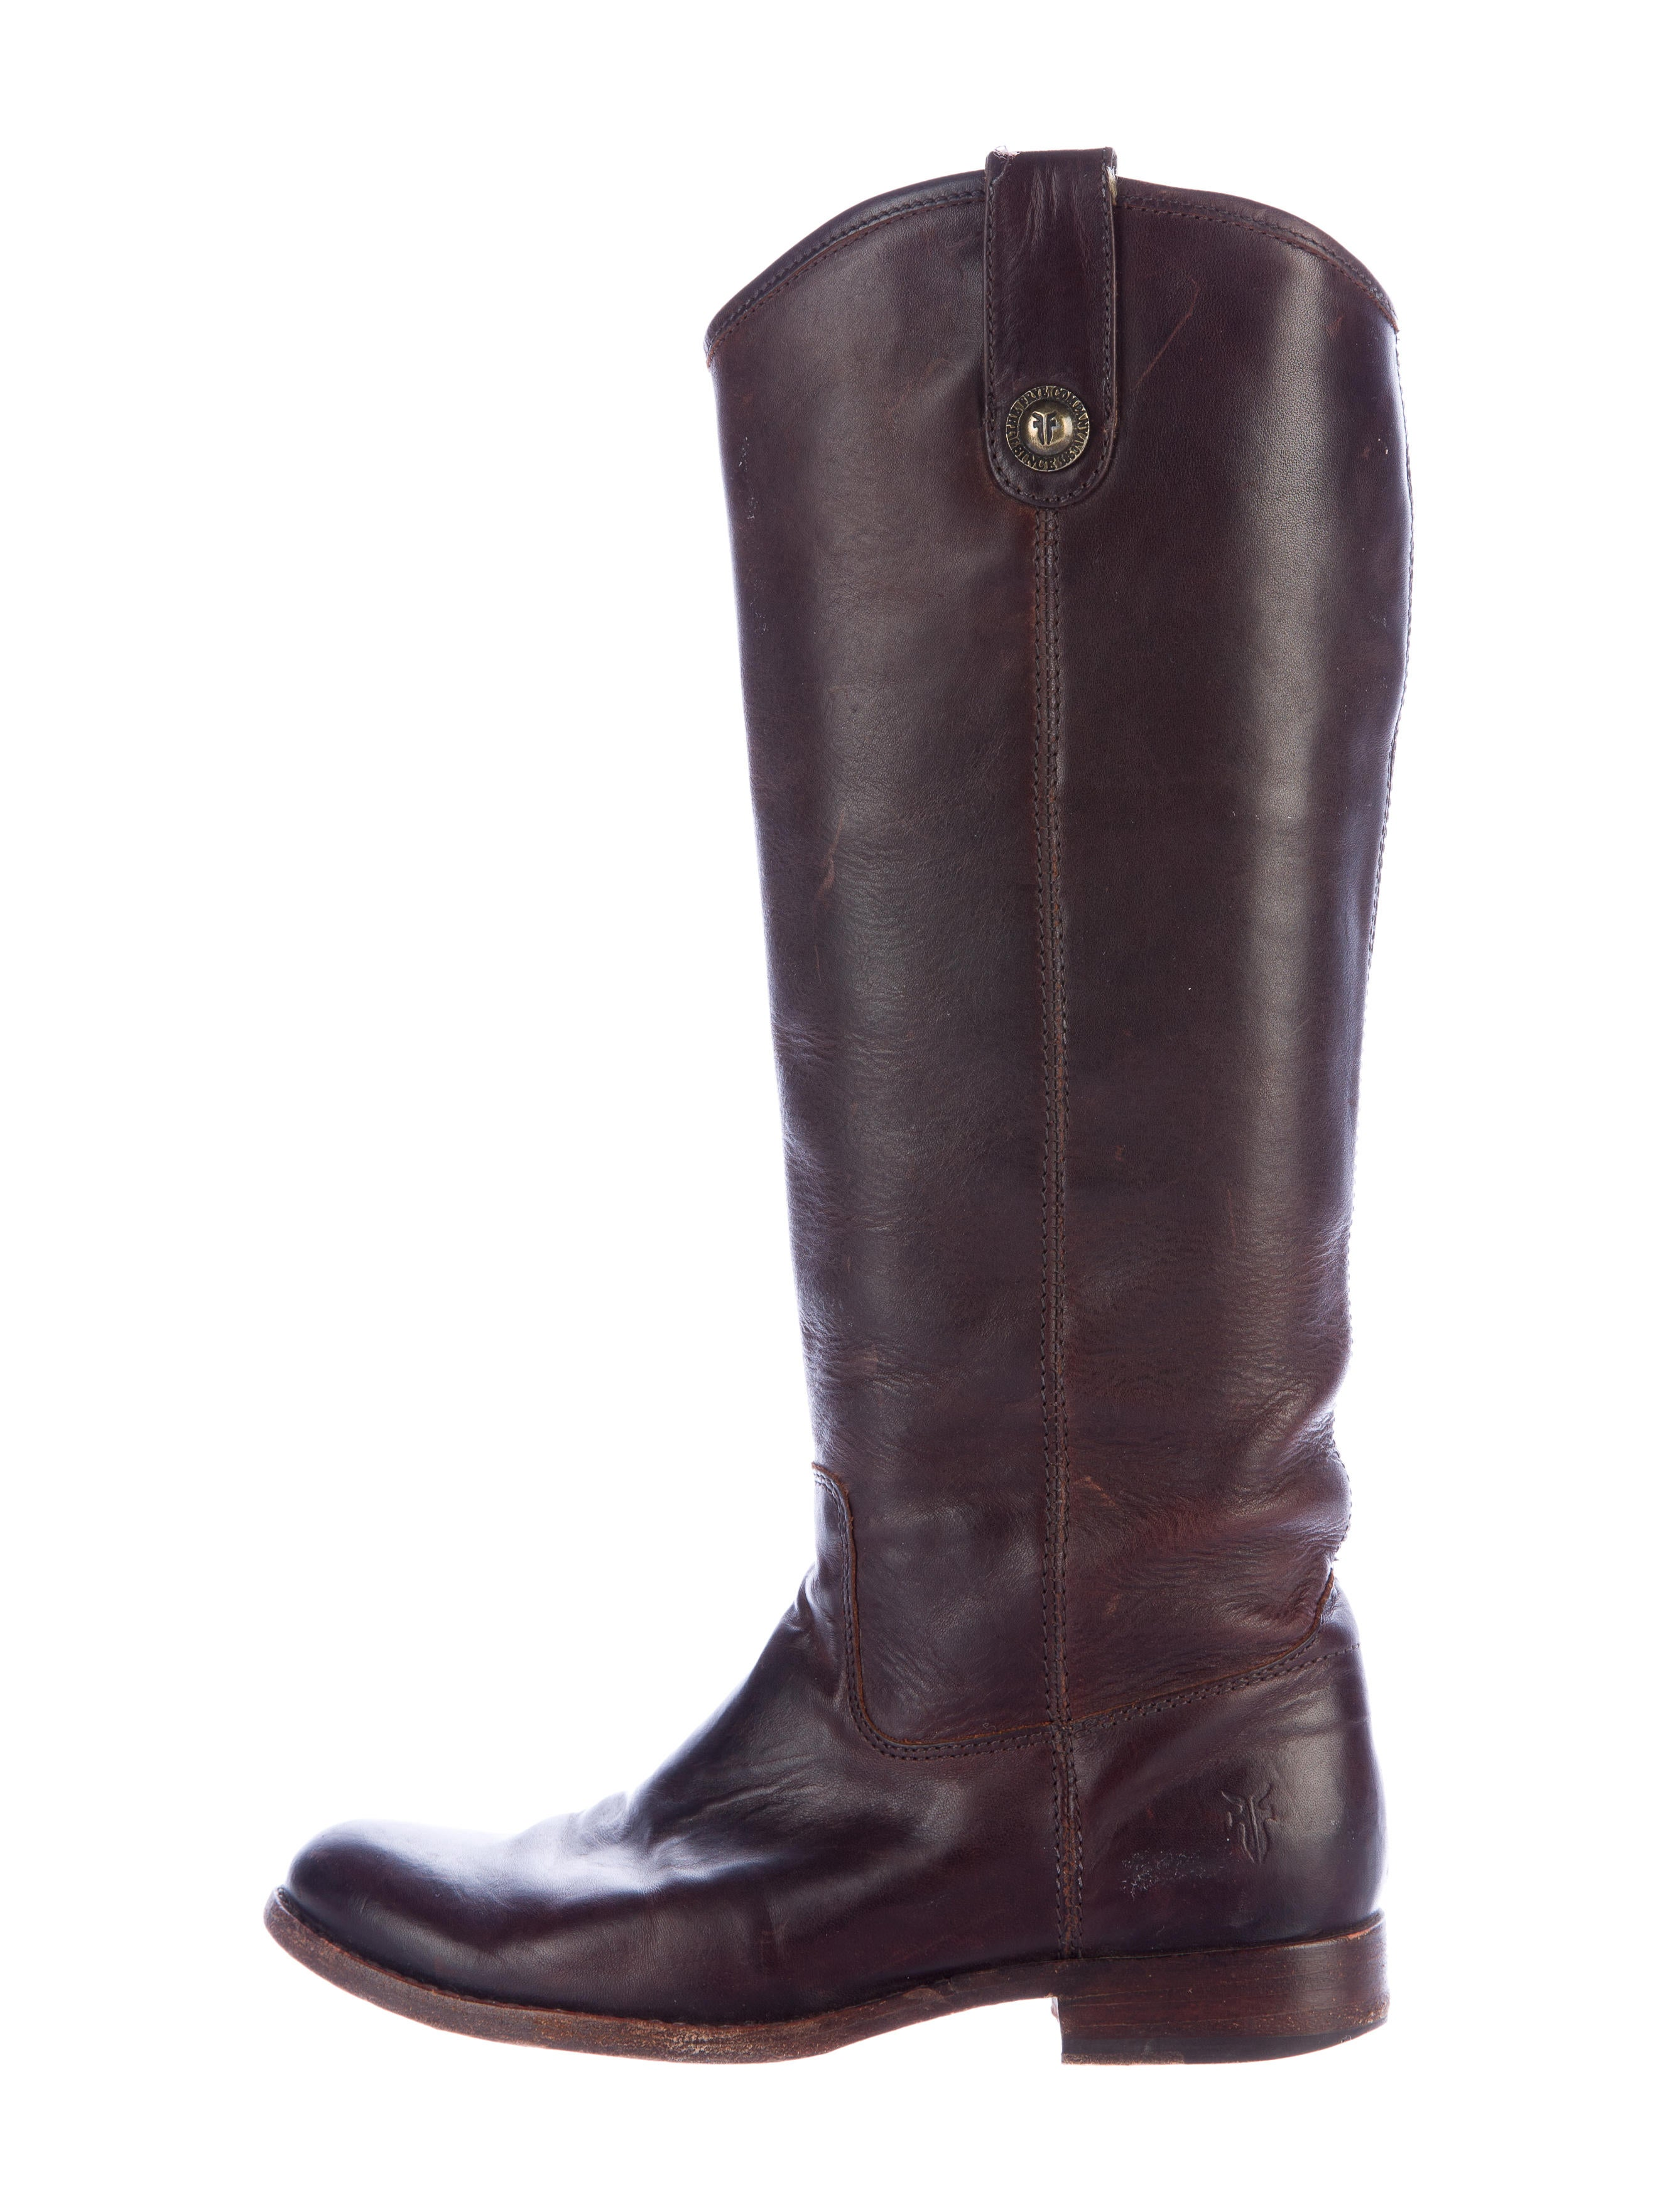 frye leather knee high boots shoes wf821019 the realreal